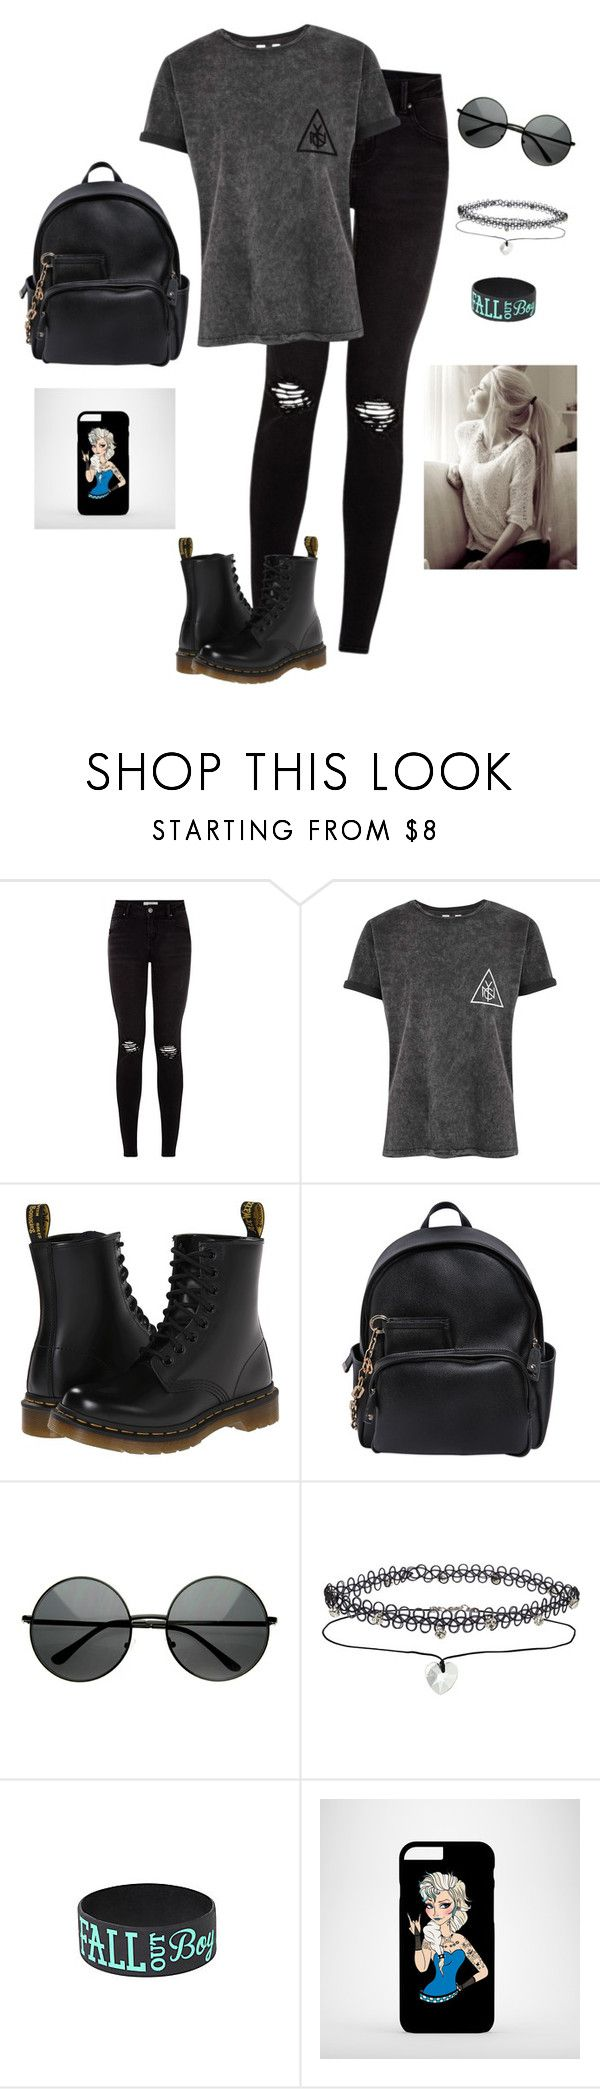 """""""Punk/Rock N' Roll"""" by hanakdudley ❤ liked on Polyvore featuring Dr. Martens, Dsquared2, MLC Eyewear and Miss Selfridge"""